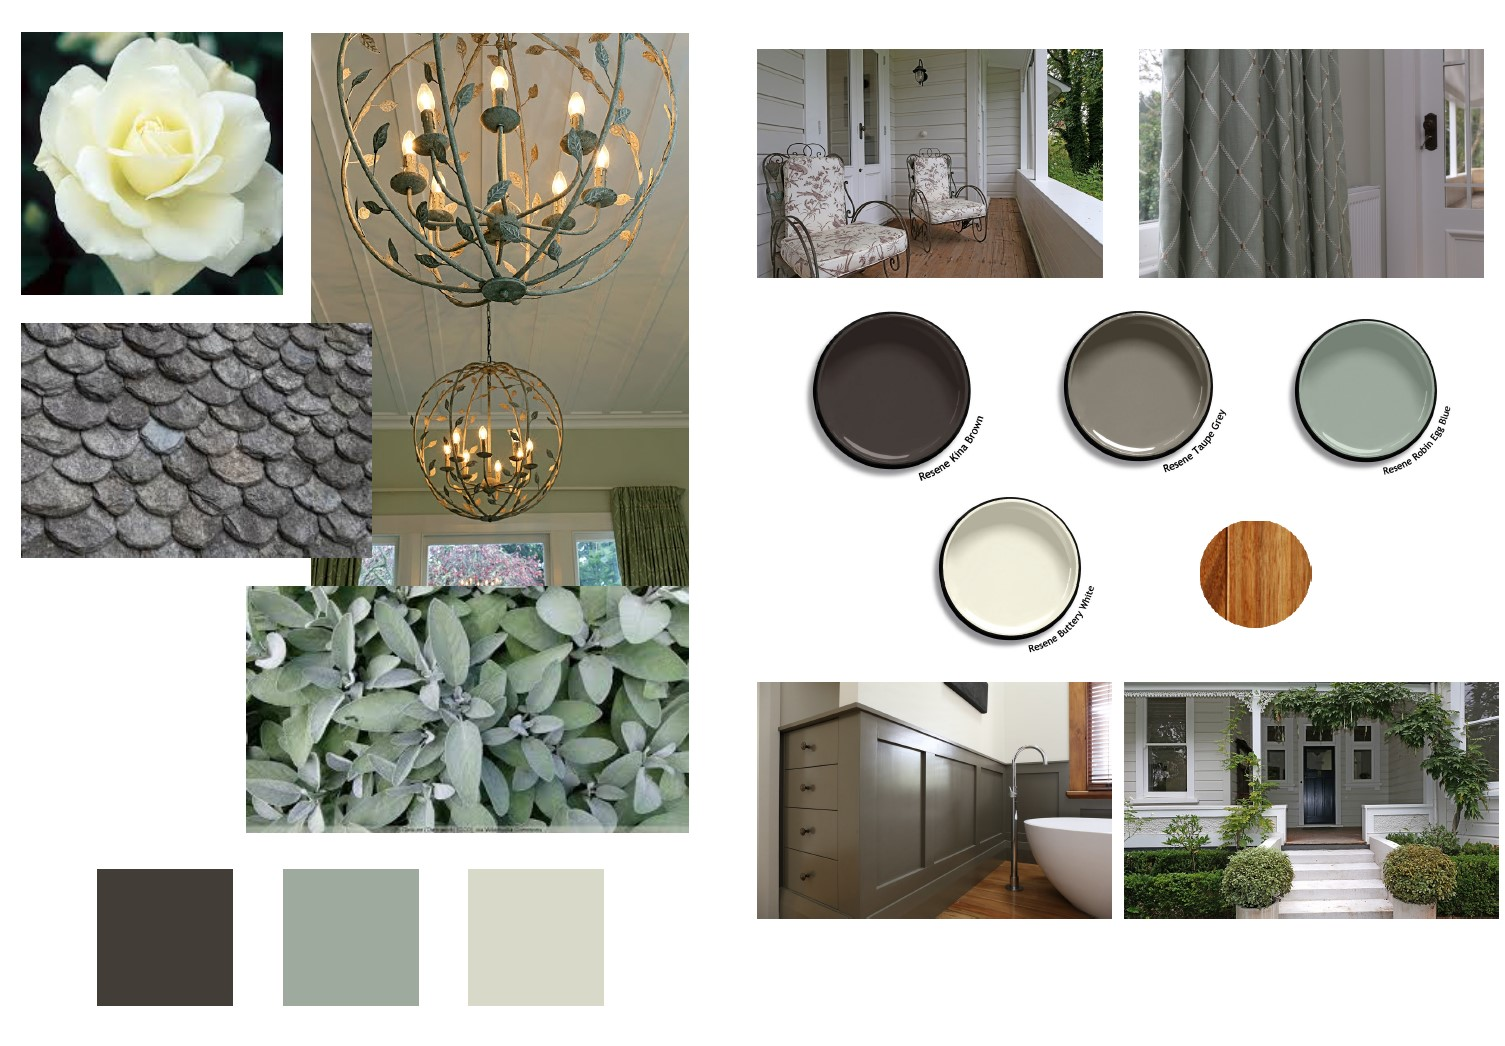 Interior design services offered by interior design group for Interior design group